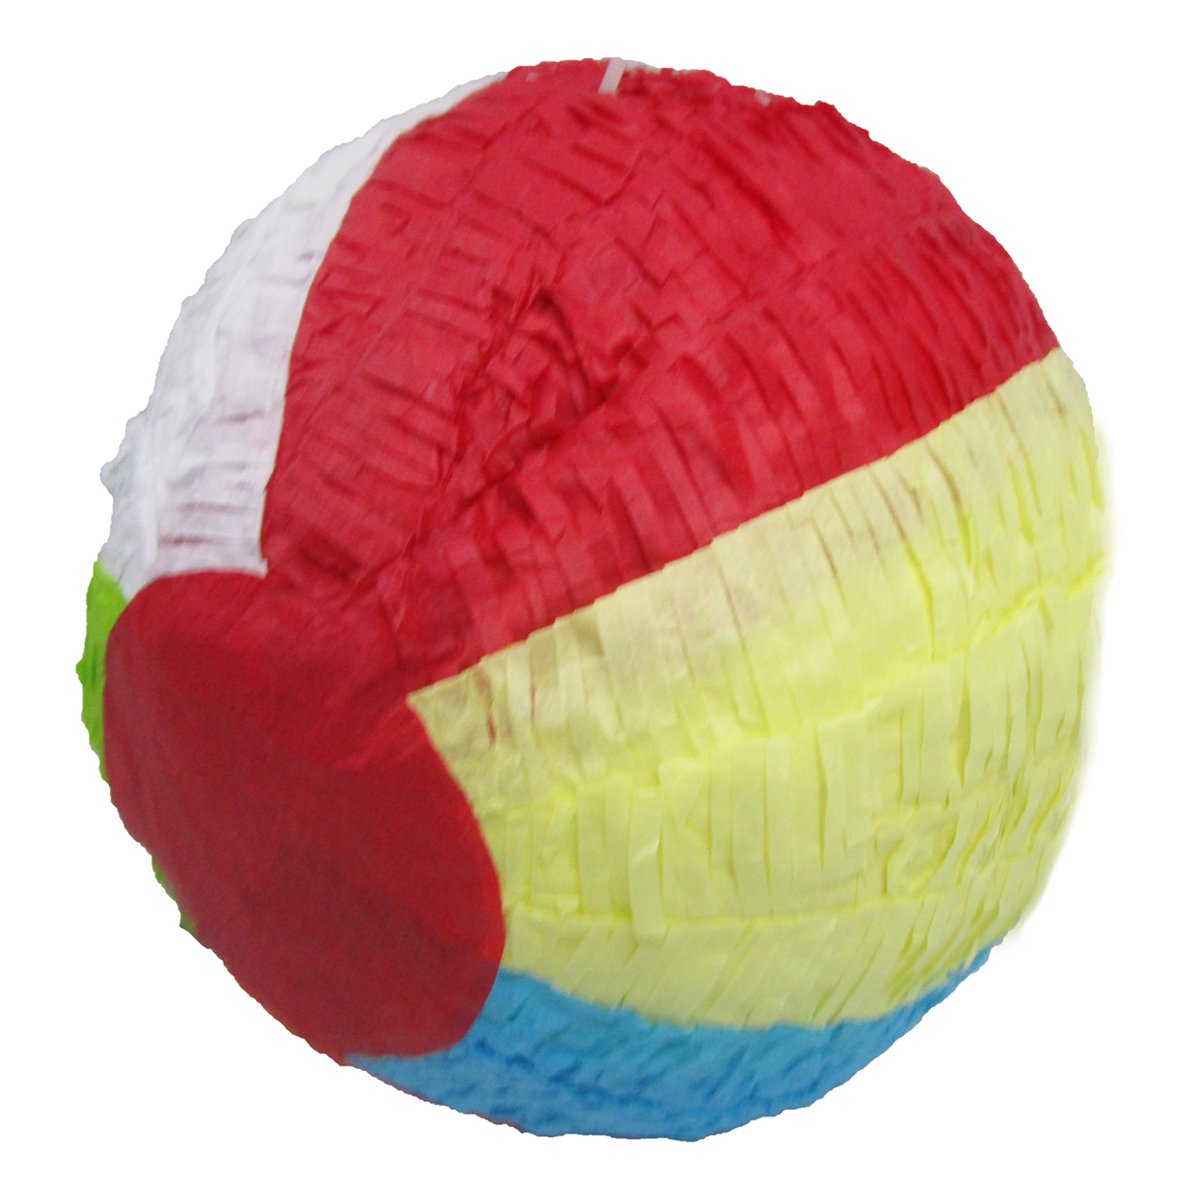 CUSTOM BALL PINATA